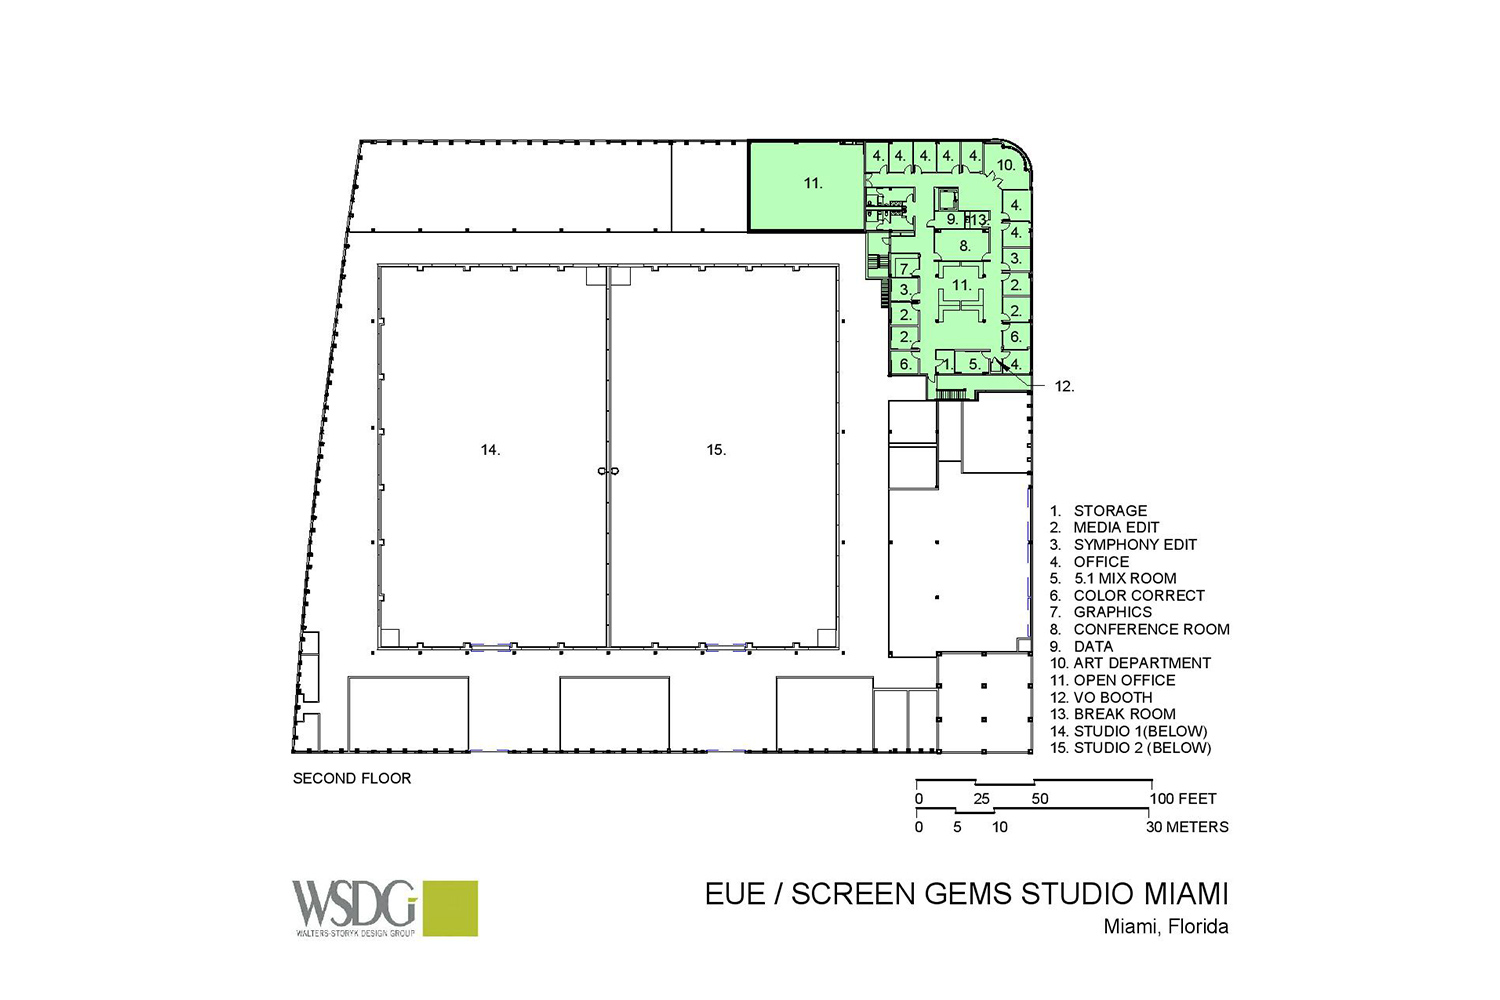 Viacom International/EUE/Screen Gems Studios recently completed construction on an 88,000 sq. ft. studio complex in Miami. WSDG was reached for an intensive feasibility study, cost/benefit analysis, and AV Systems Integration. Presentation Drawing 2.